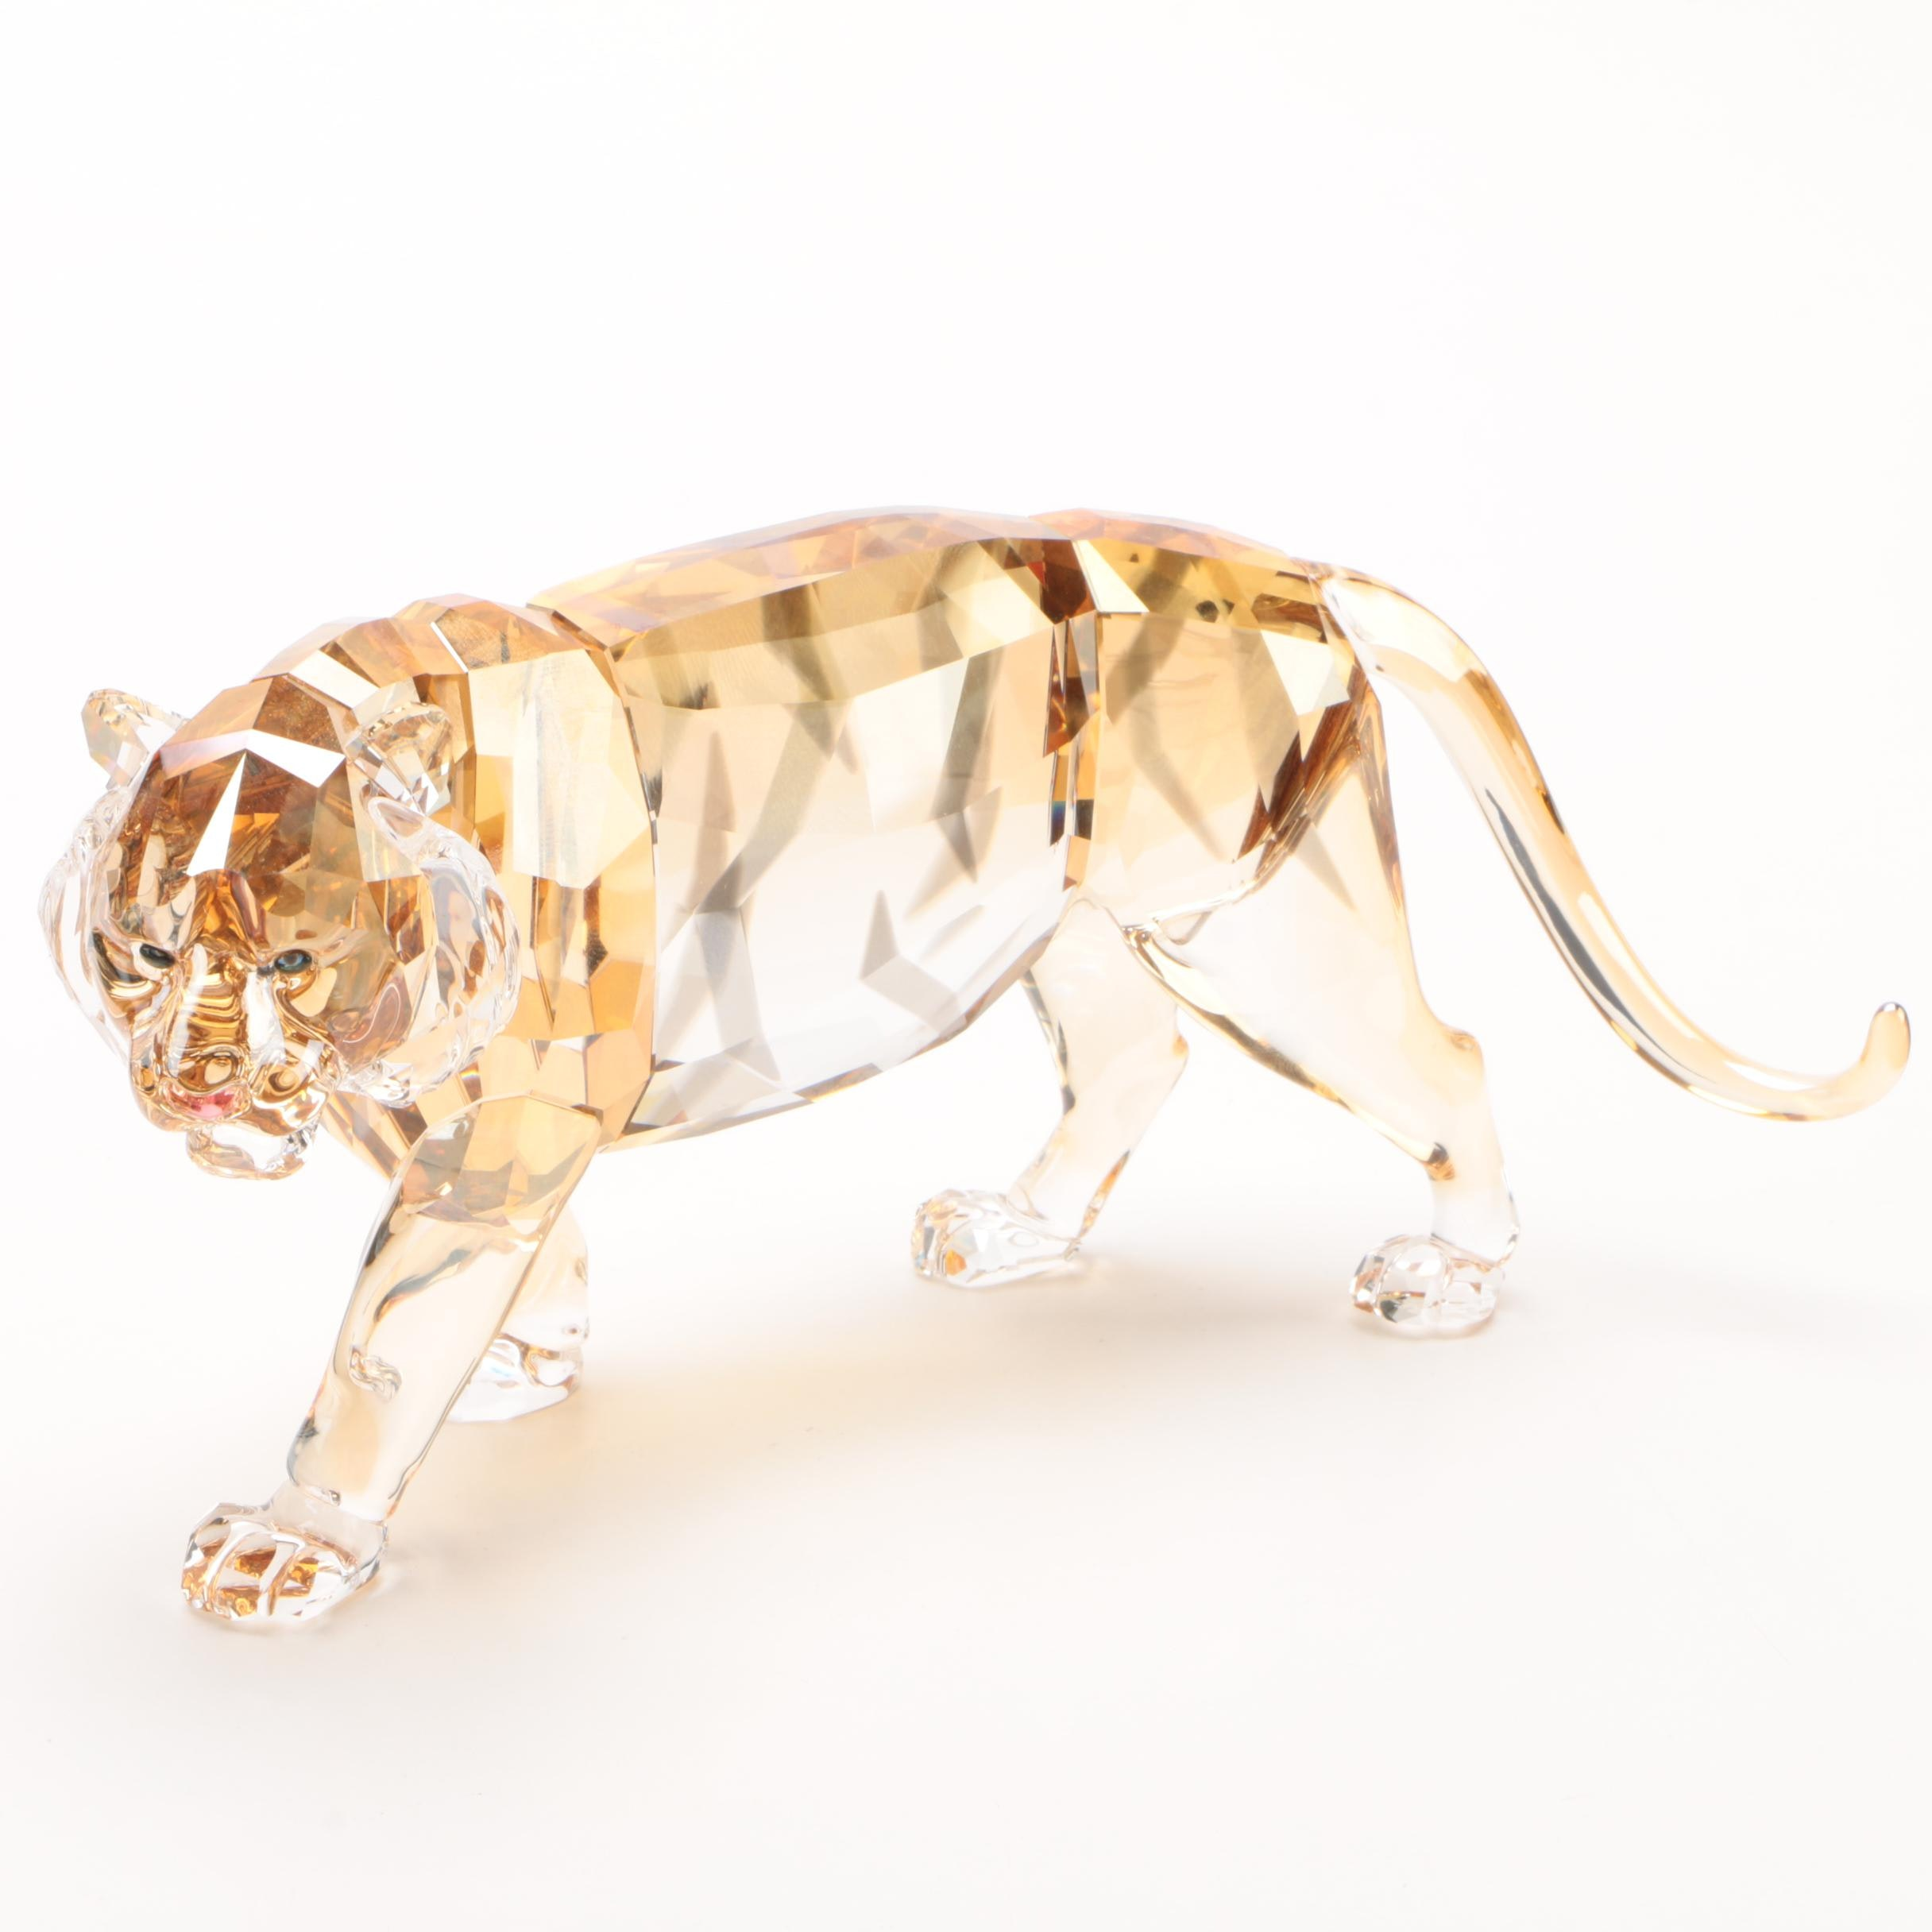 "Swarovski Endangered Wildlife ""Tiger"" Crystal Figurine, 2010"